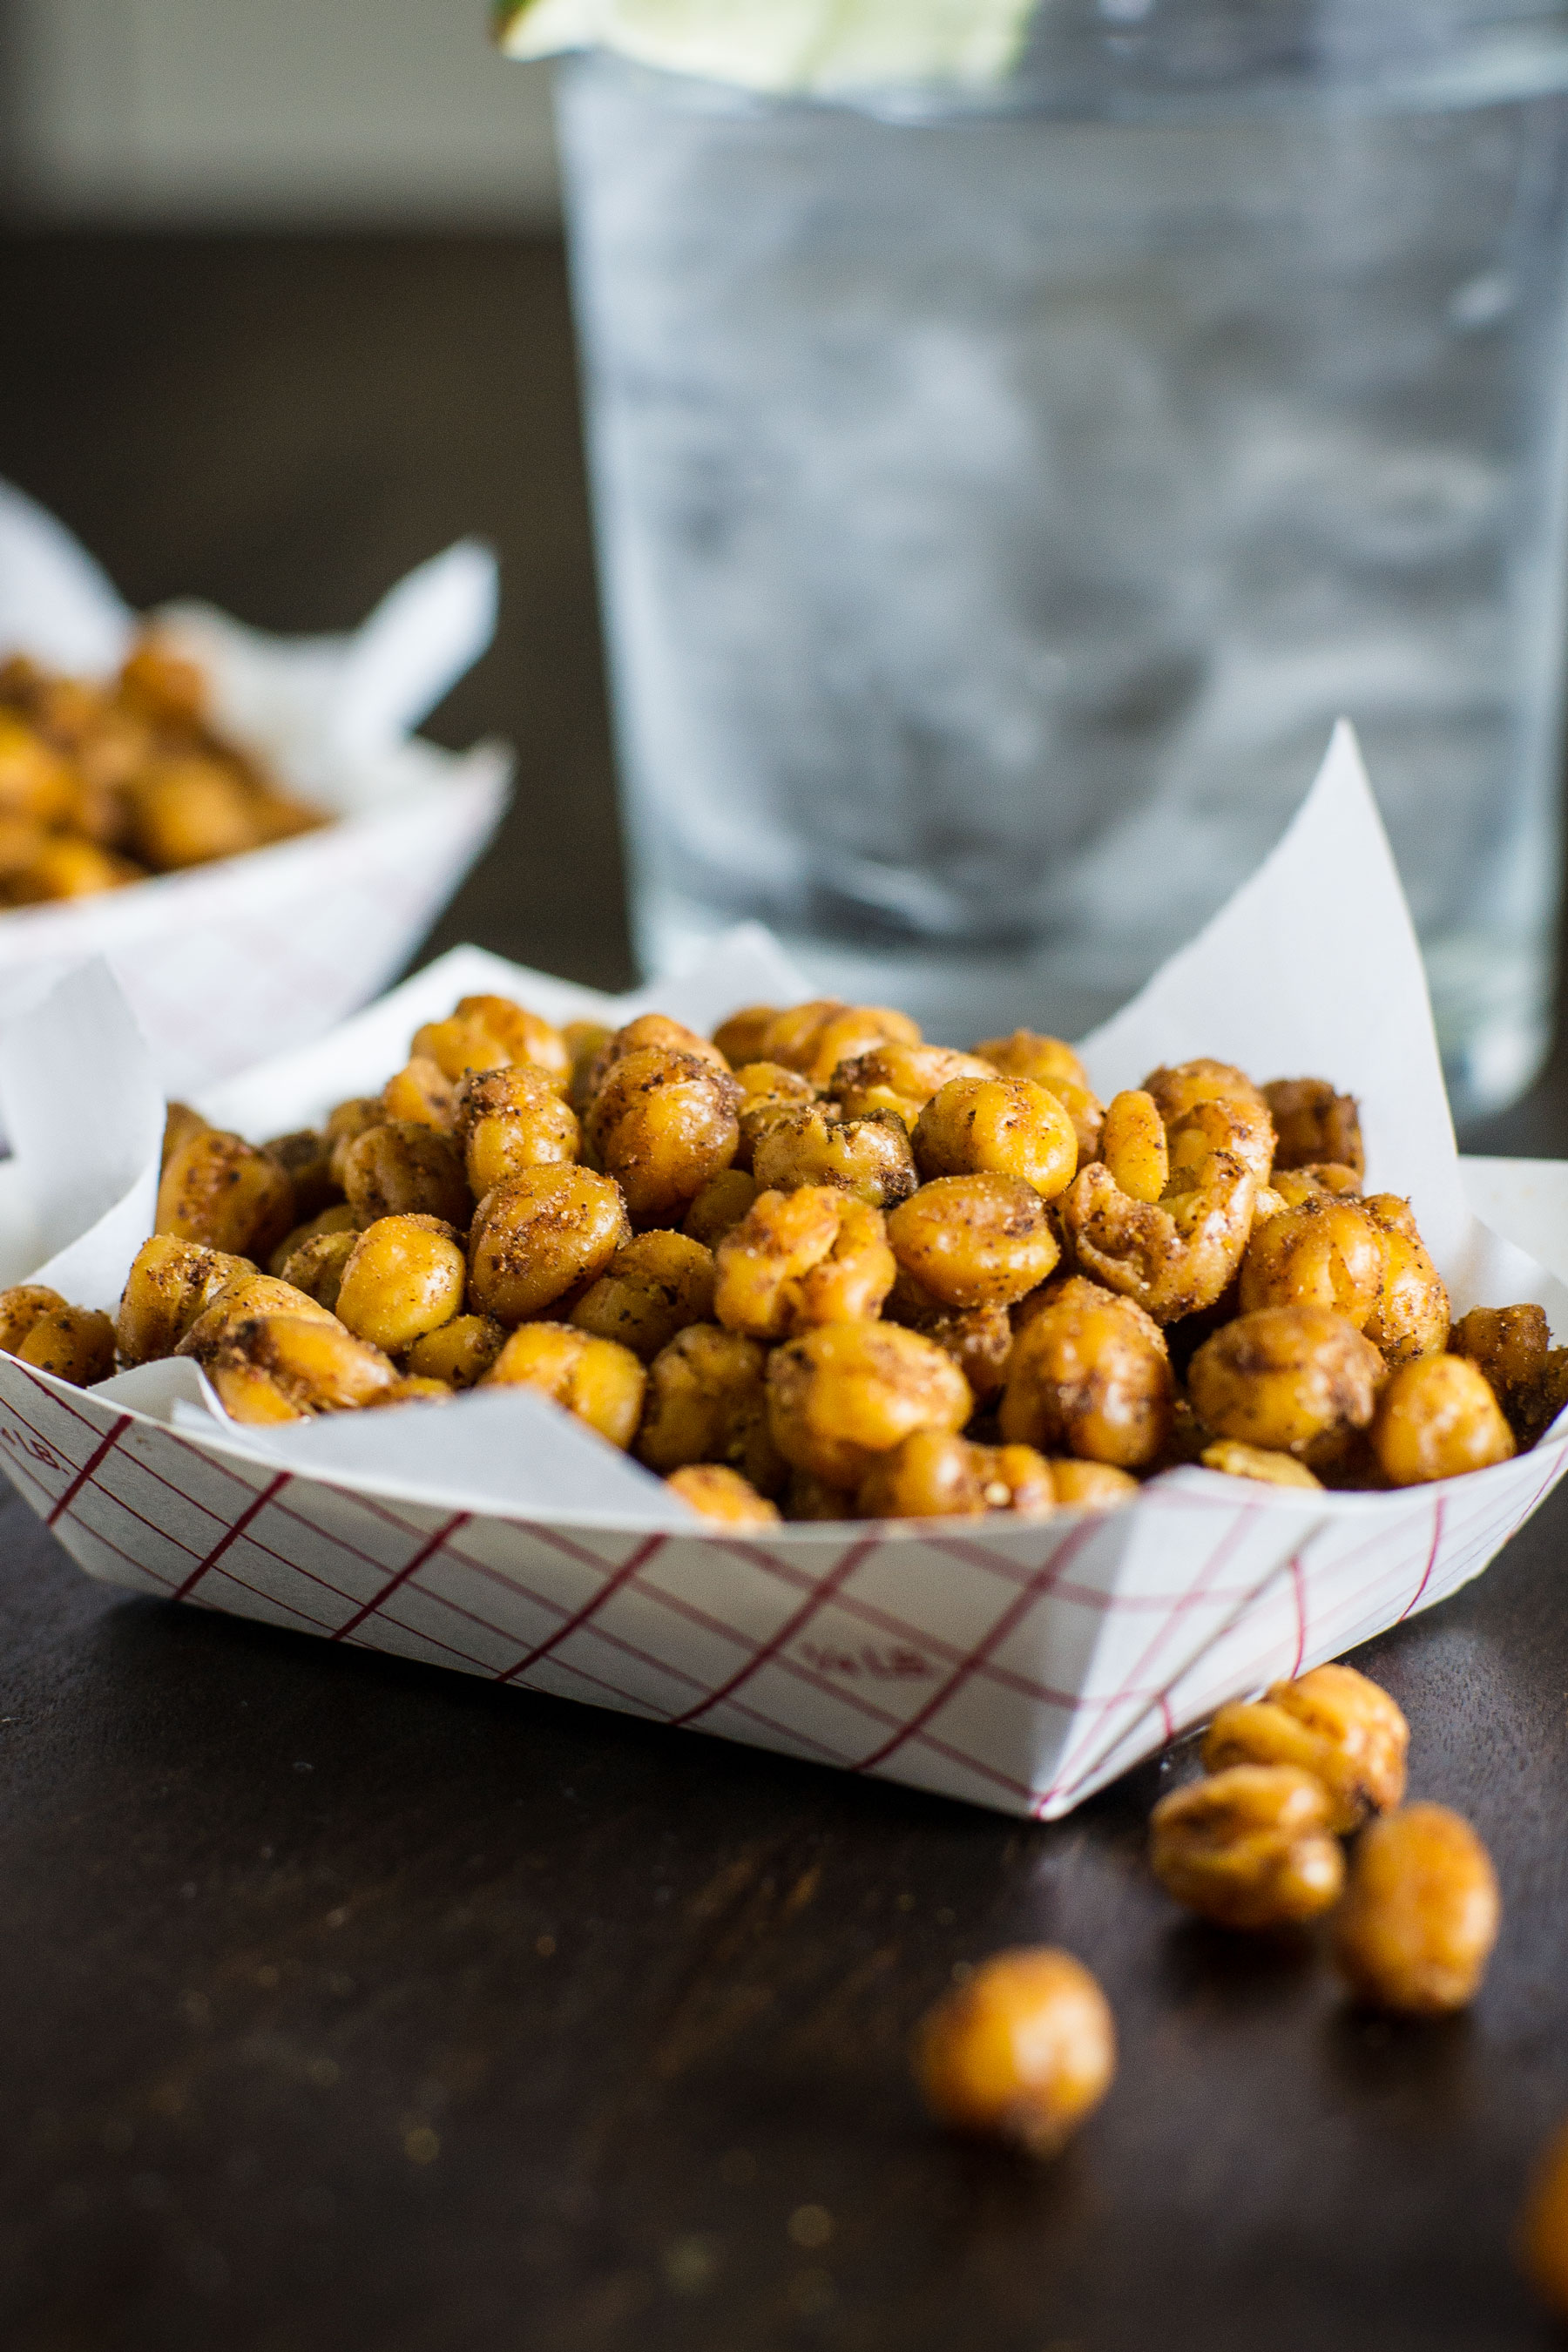 Roasted Chickpeas by Sam Henderson of Today's Nest